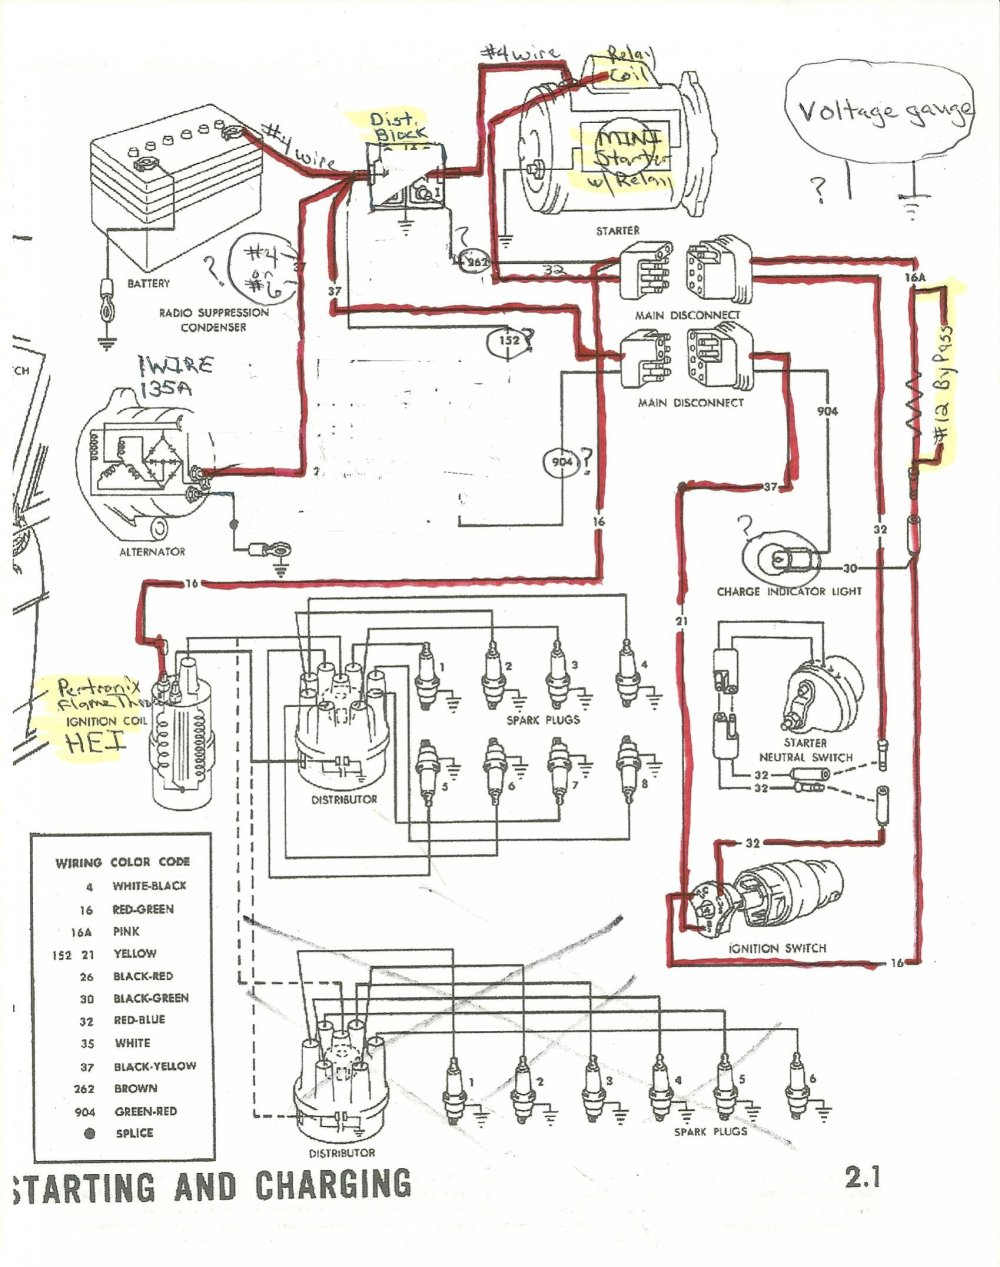 medium resolution of dodge alternator wiring 1965 wiring diagram schematics ford mustang voltage regulator wiring diagram 2002 ford mustang alternator wiring diagram